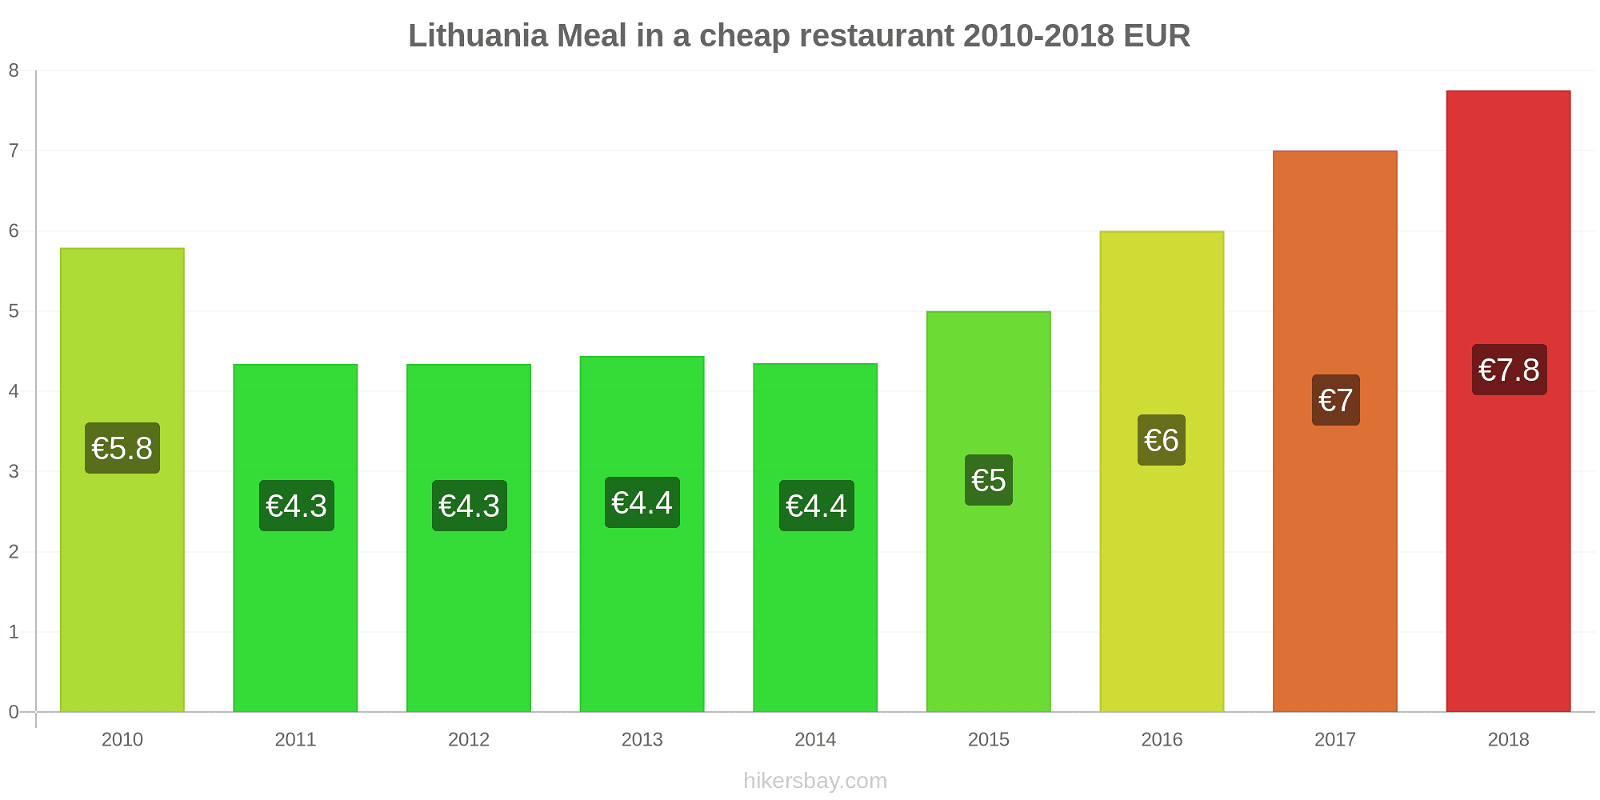 Lithuania price changes Meal in a cheap restaurant hikersbay.com